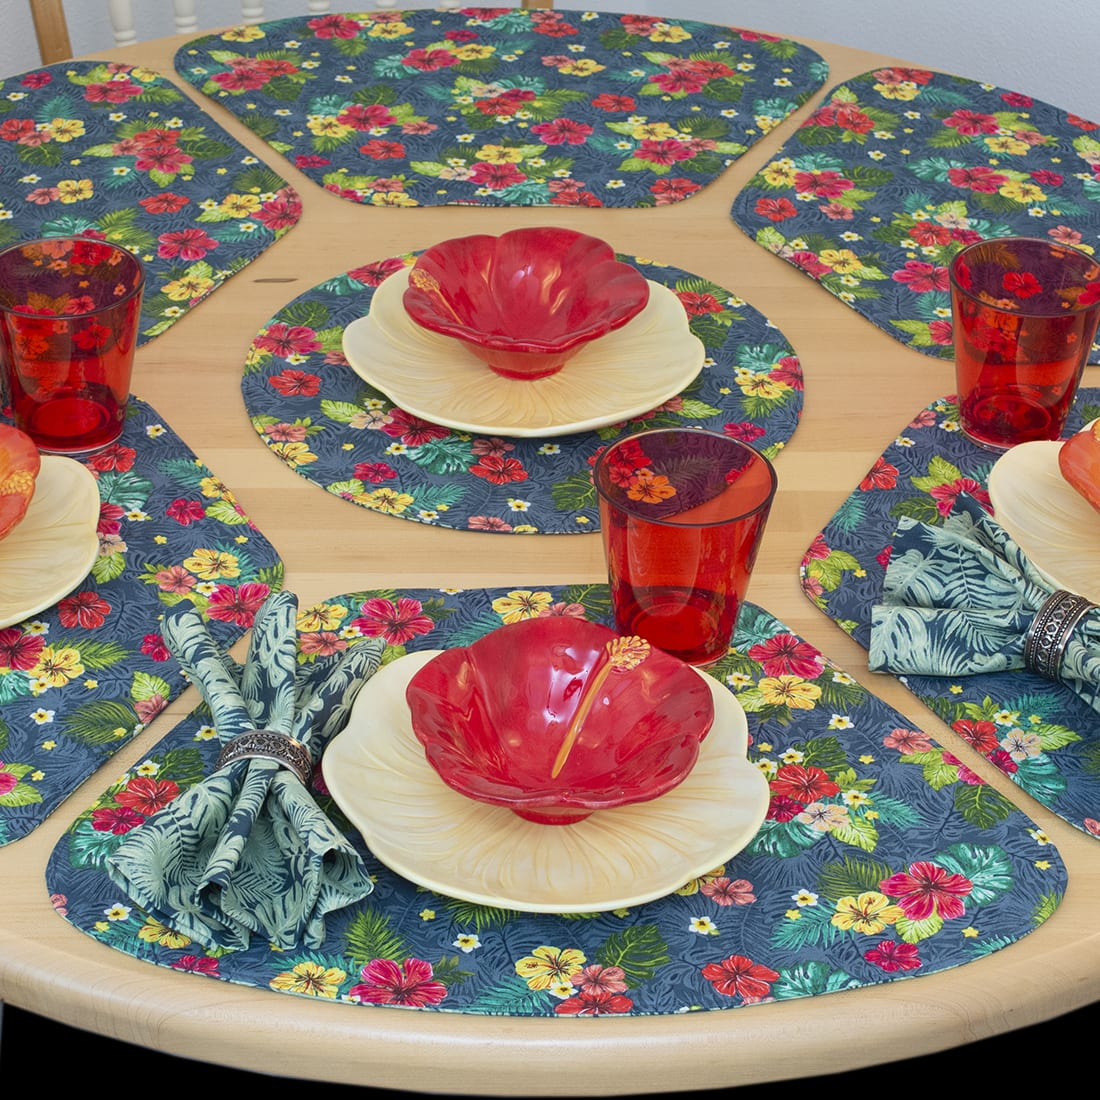 Sweet Pea Linens - Teal Green Tropical Print Wedge-Shaped Placemats - Set of Four plus Center Round-Charger (SKU#: RS5-1006-Z3) - Table Setting